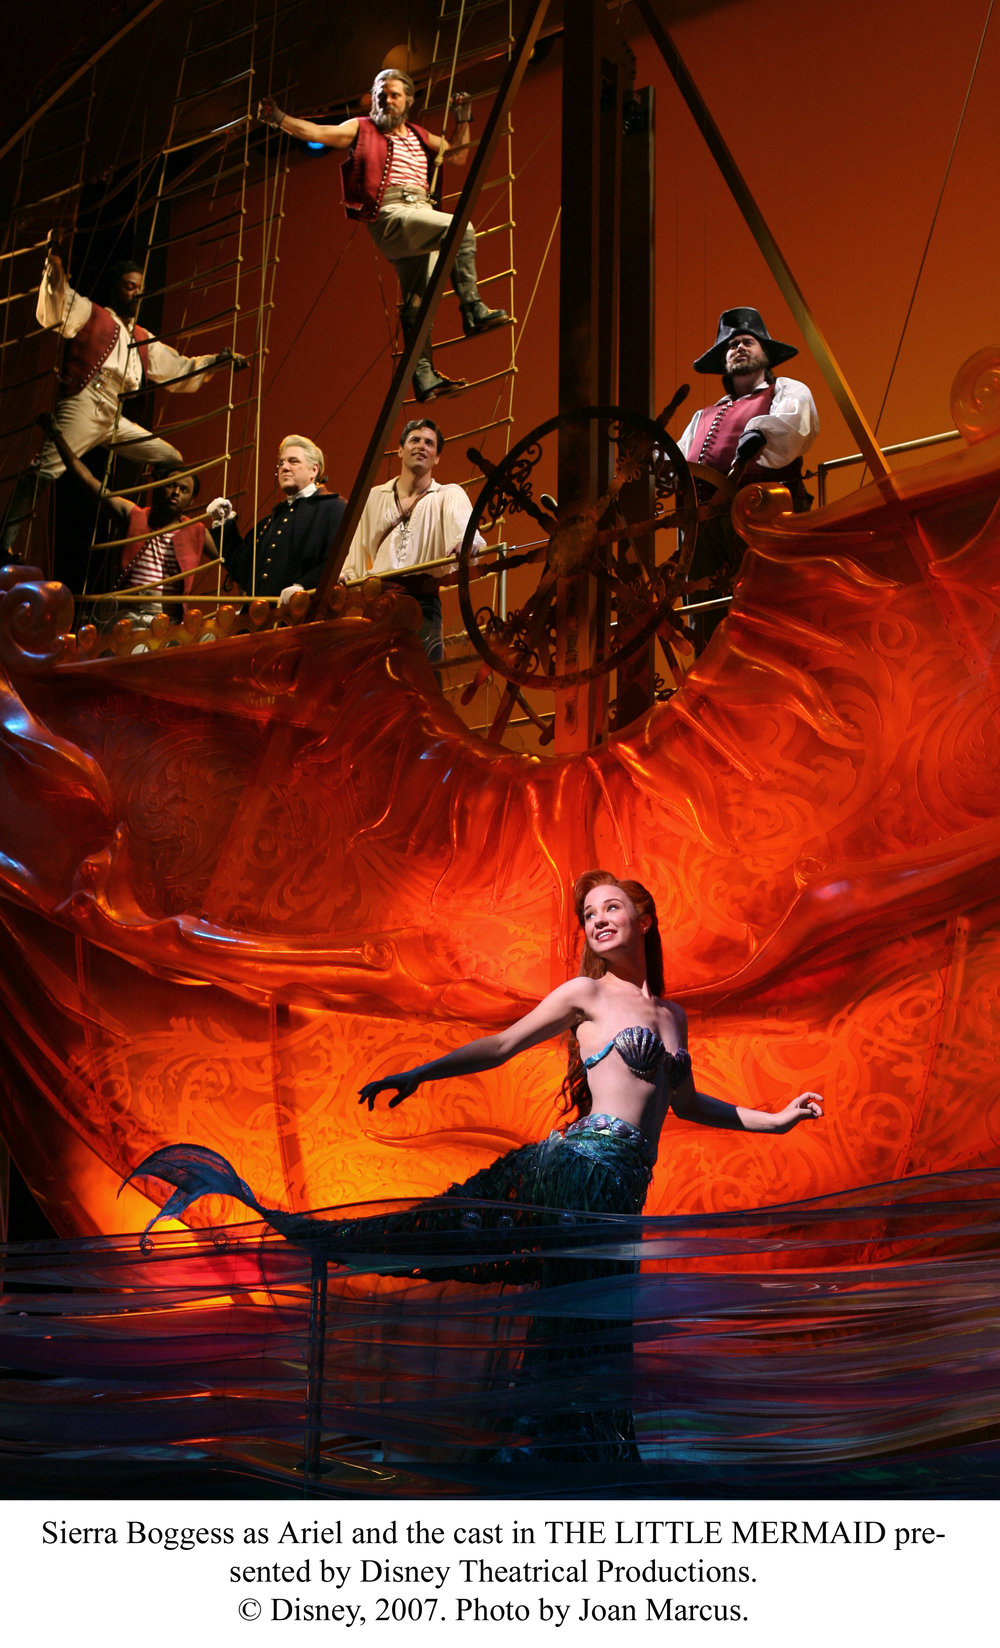 Sierra-Boggess-Little-Mermaid-Broadway-Sierra with boat 1265 XX.jpg